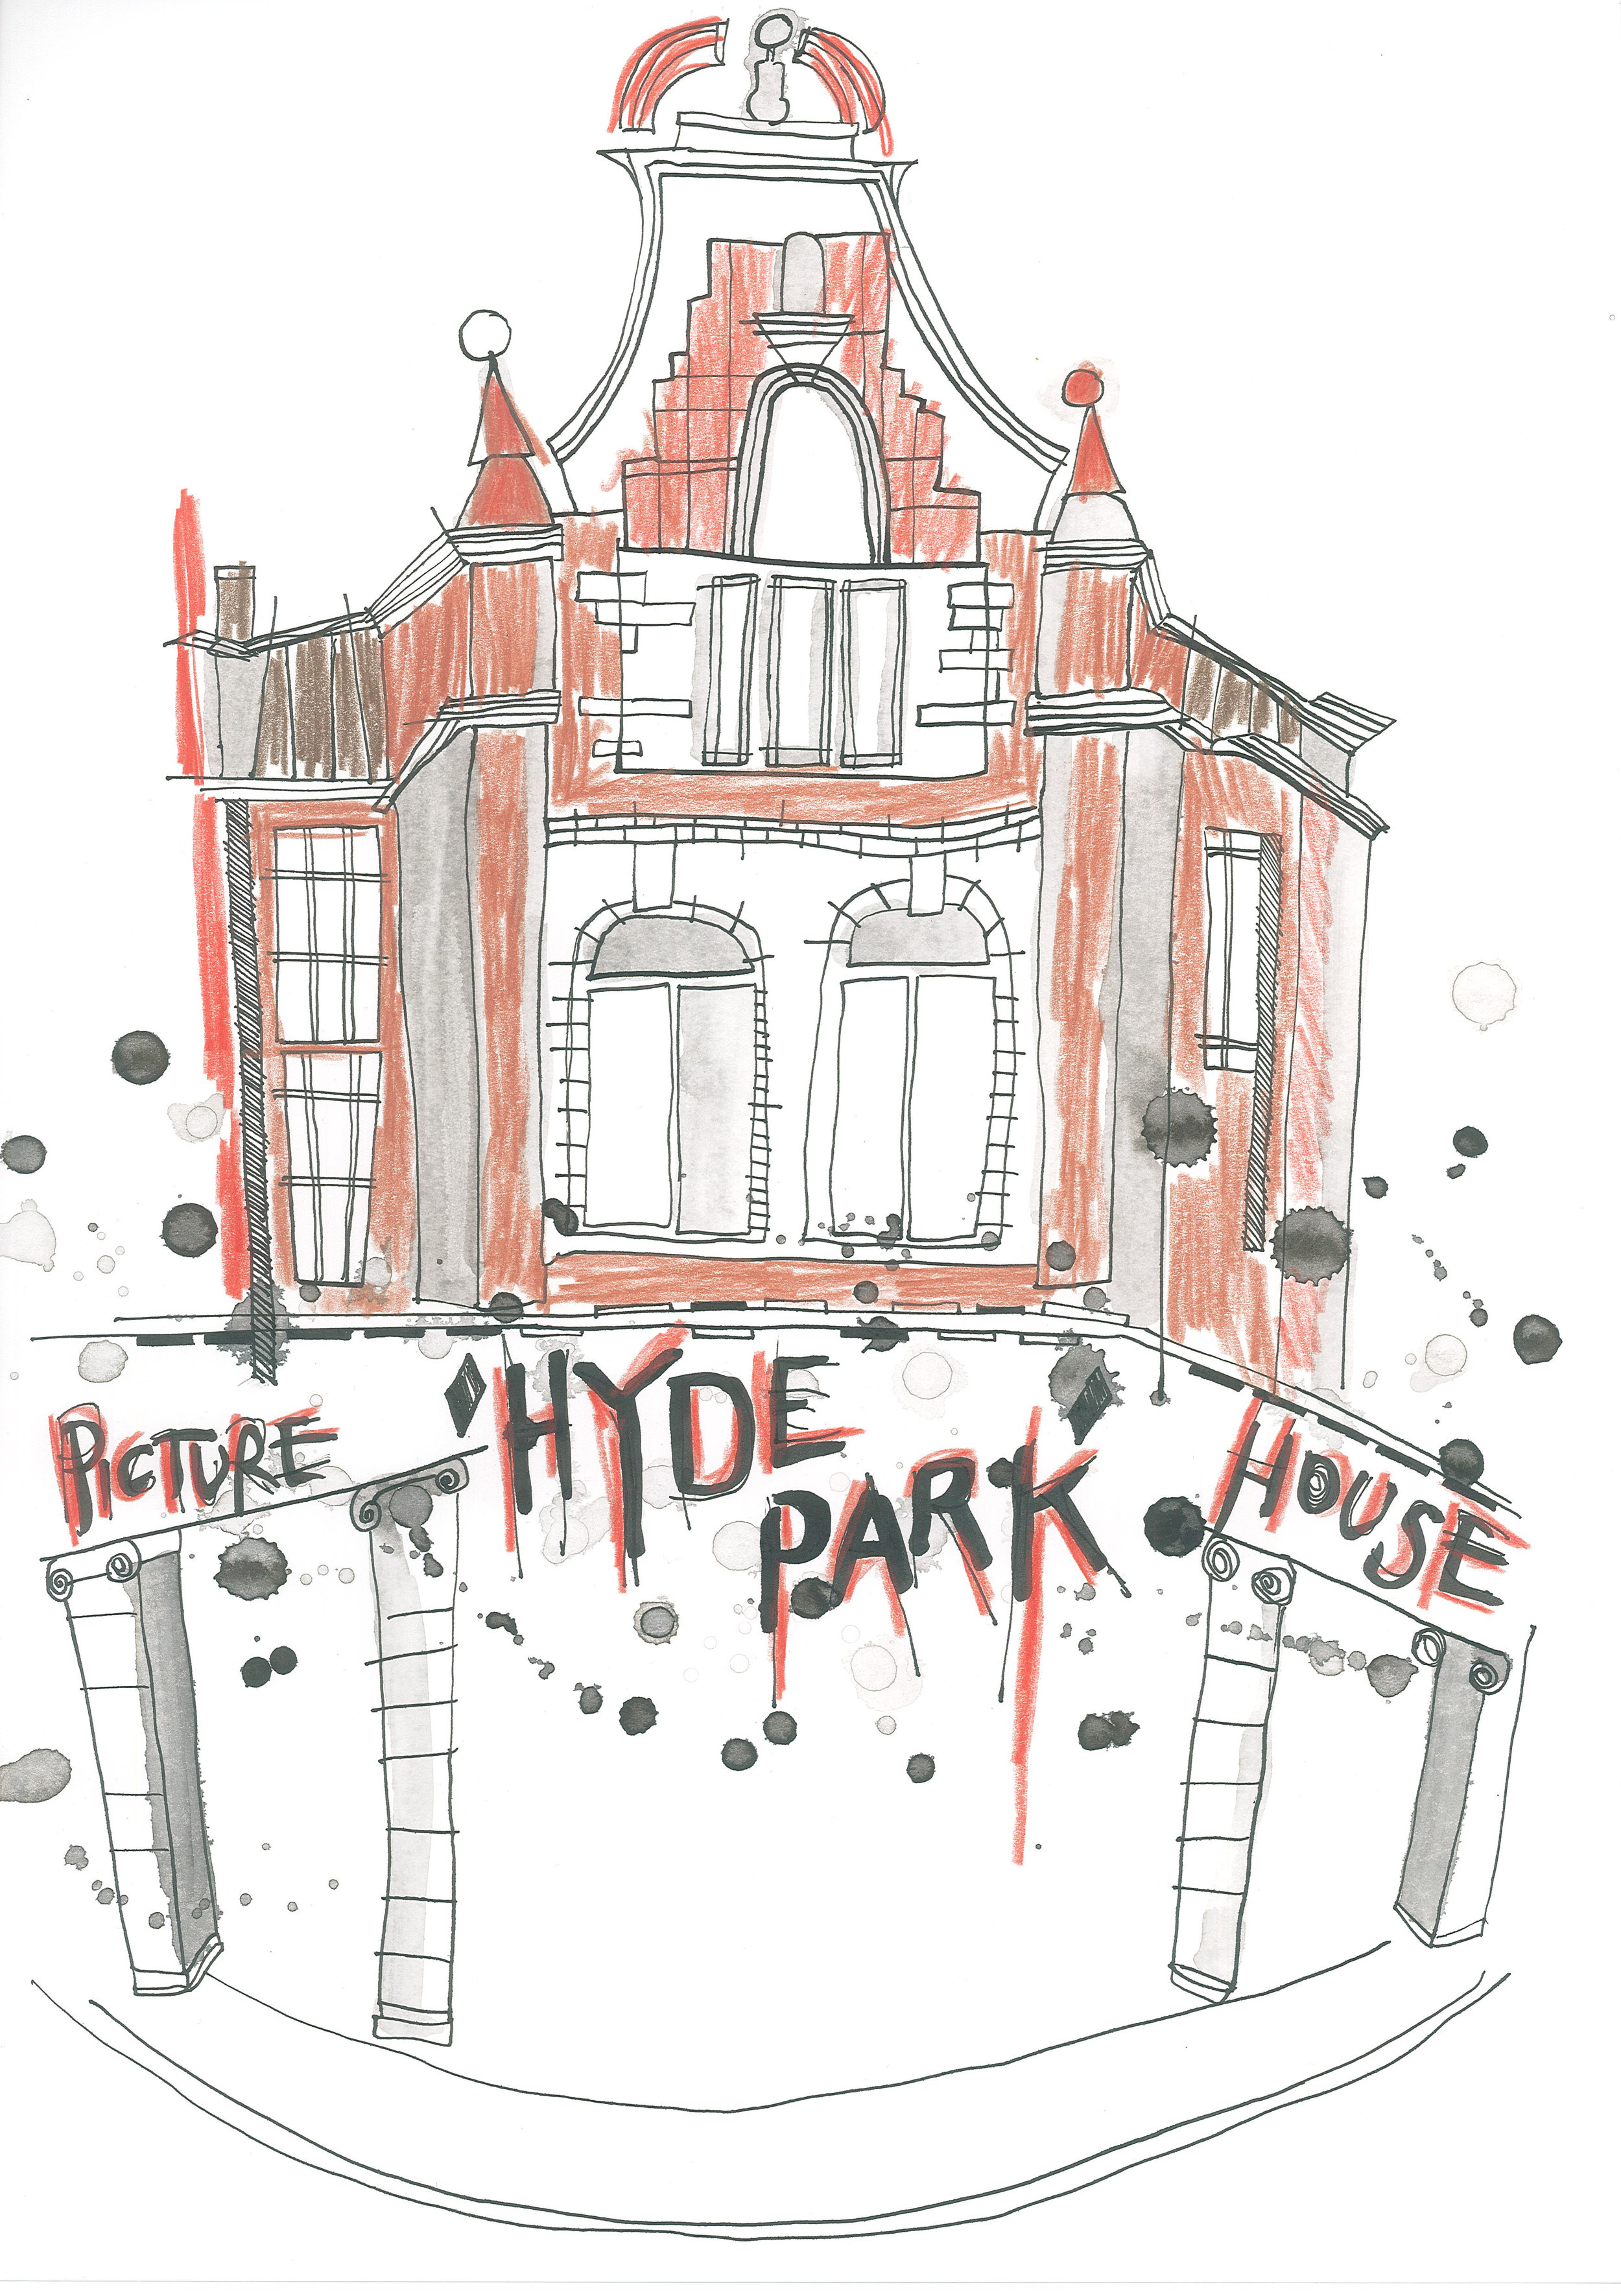 Hyde Park Picture House - web ready .jpg